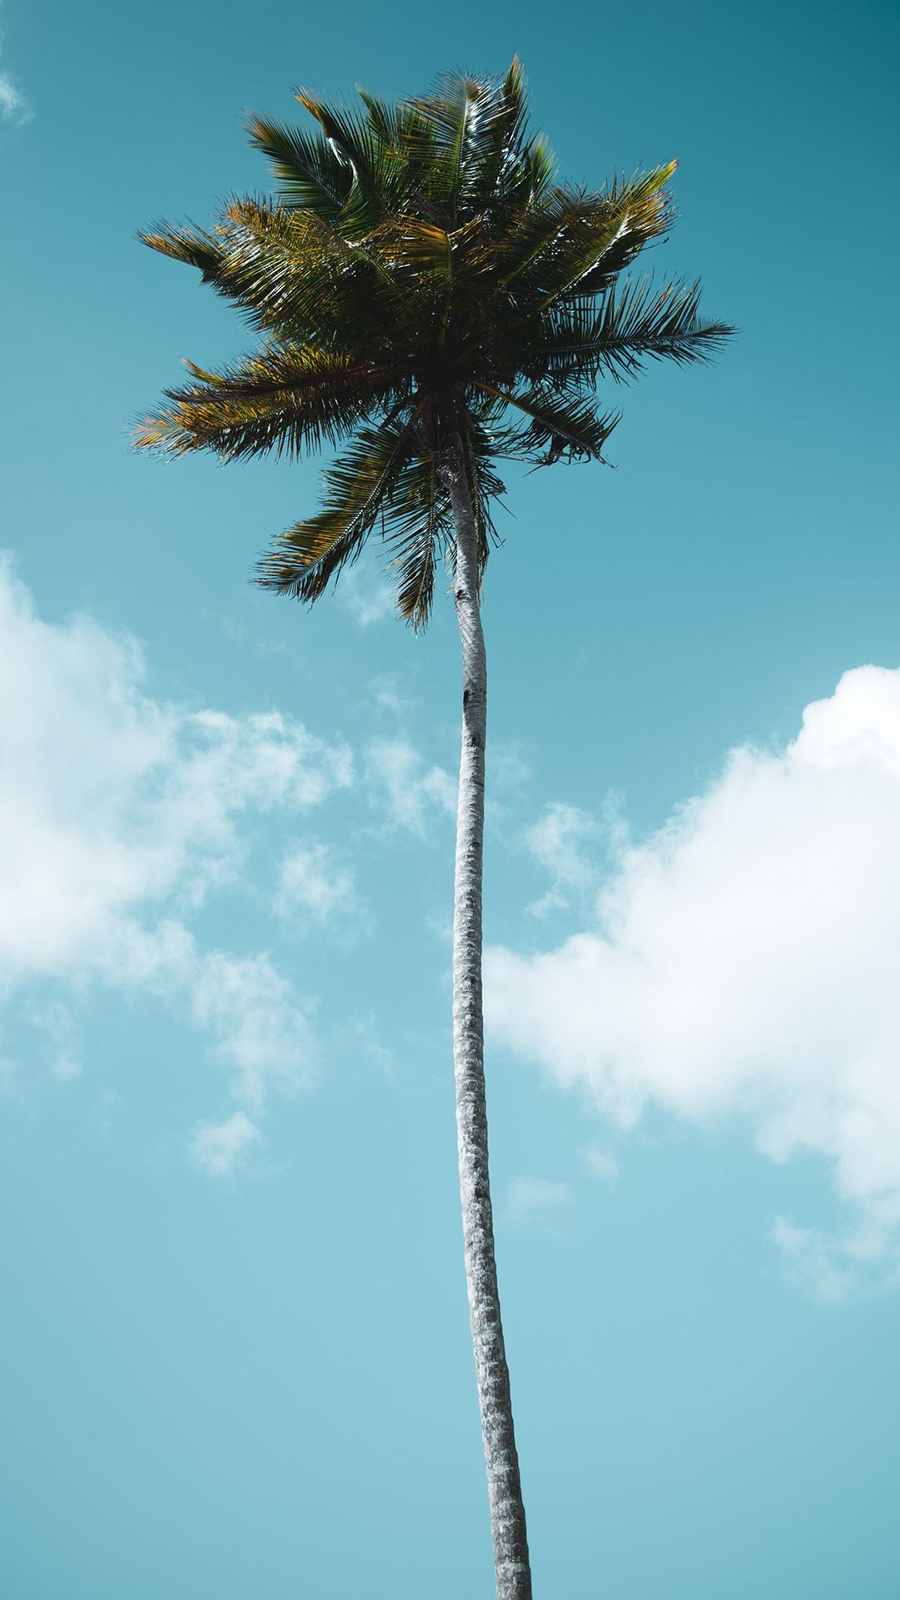 Palm Wallpaper – Trees and Nature Wallpapers Free Download